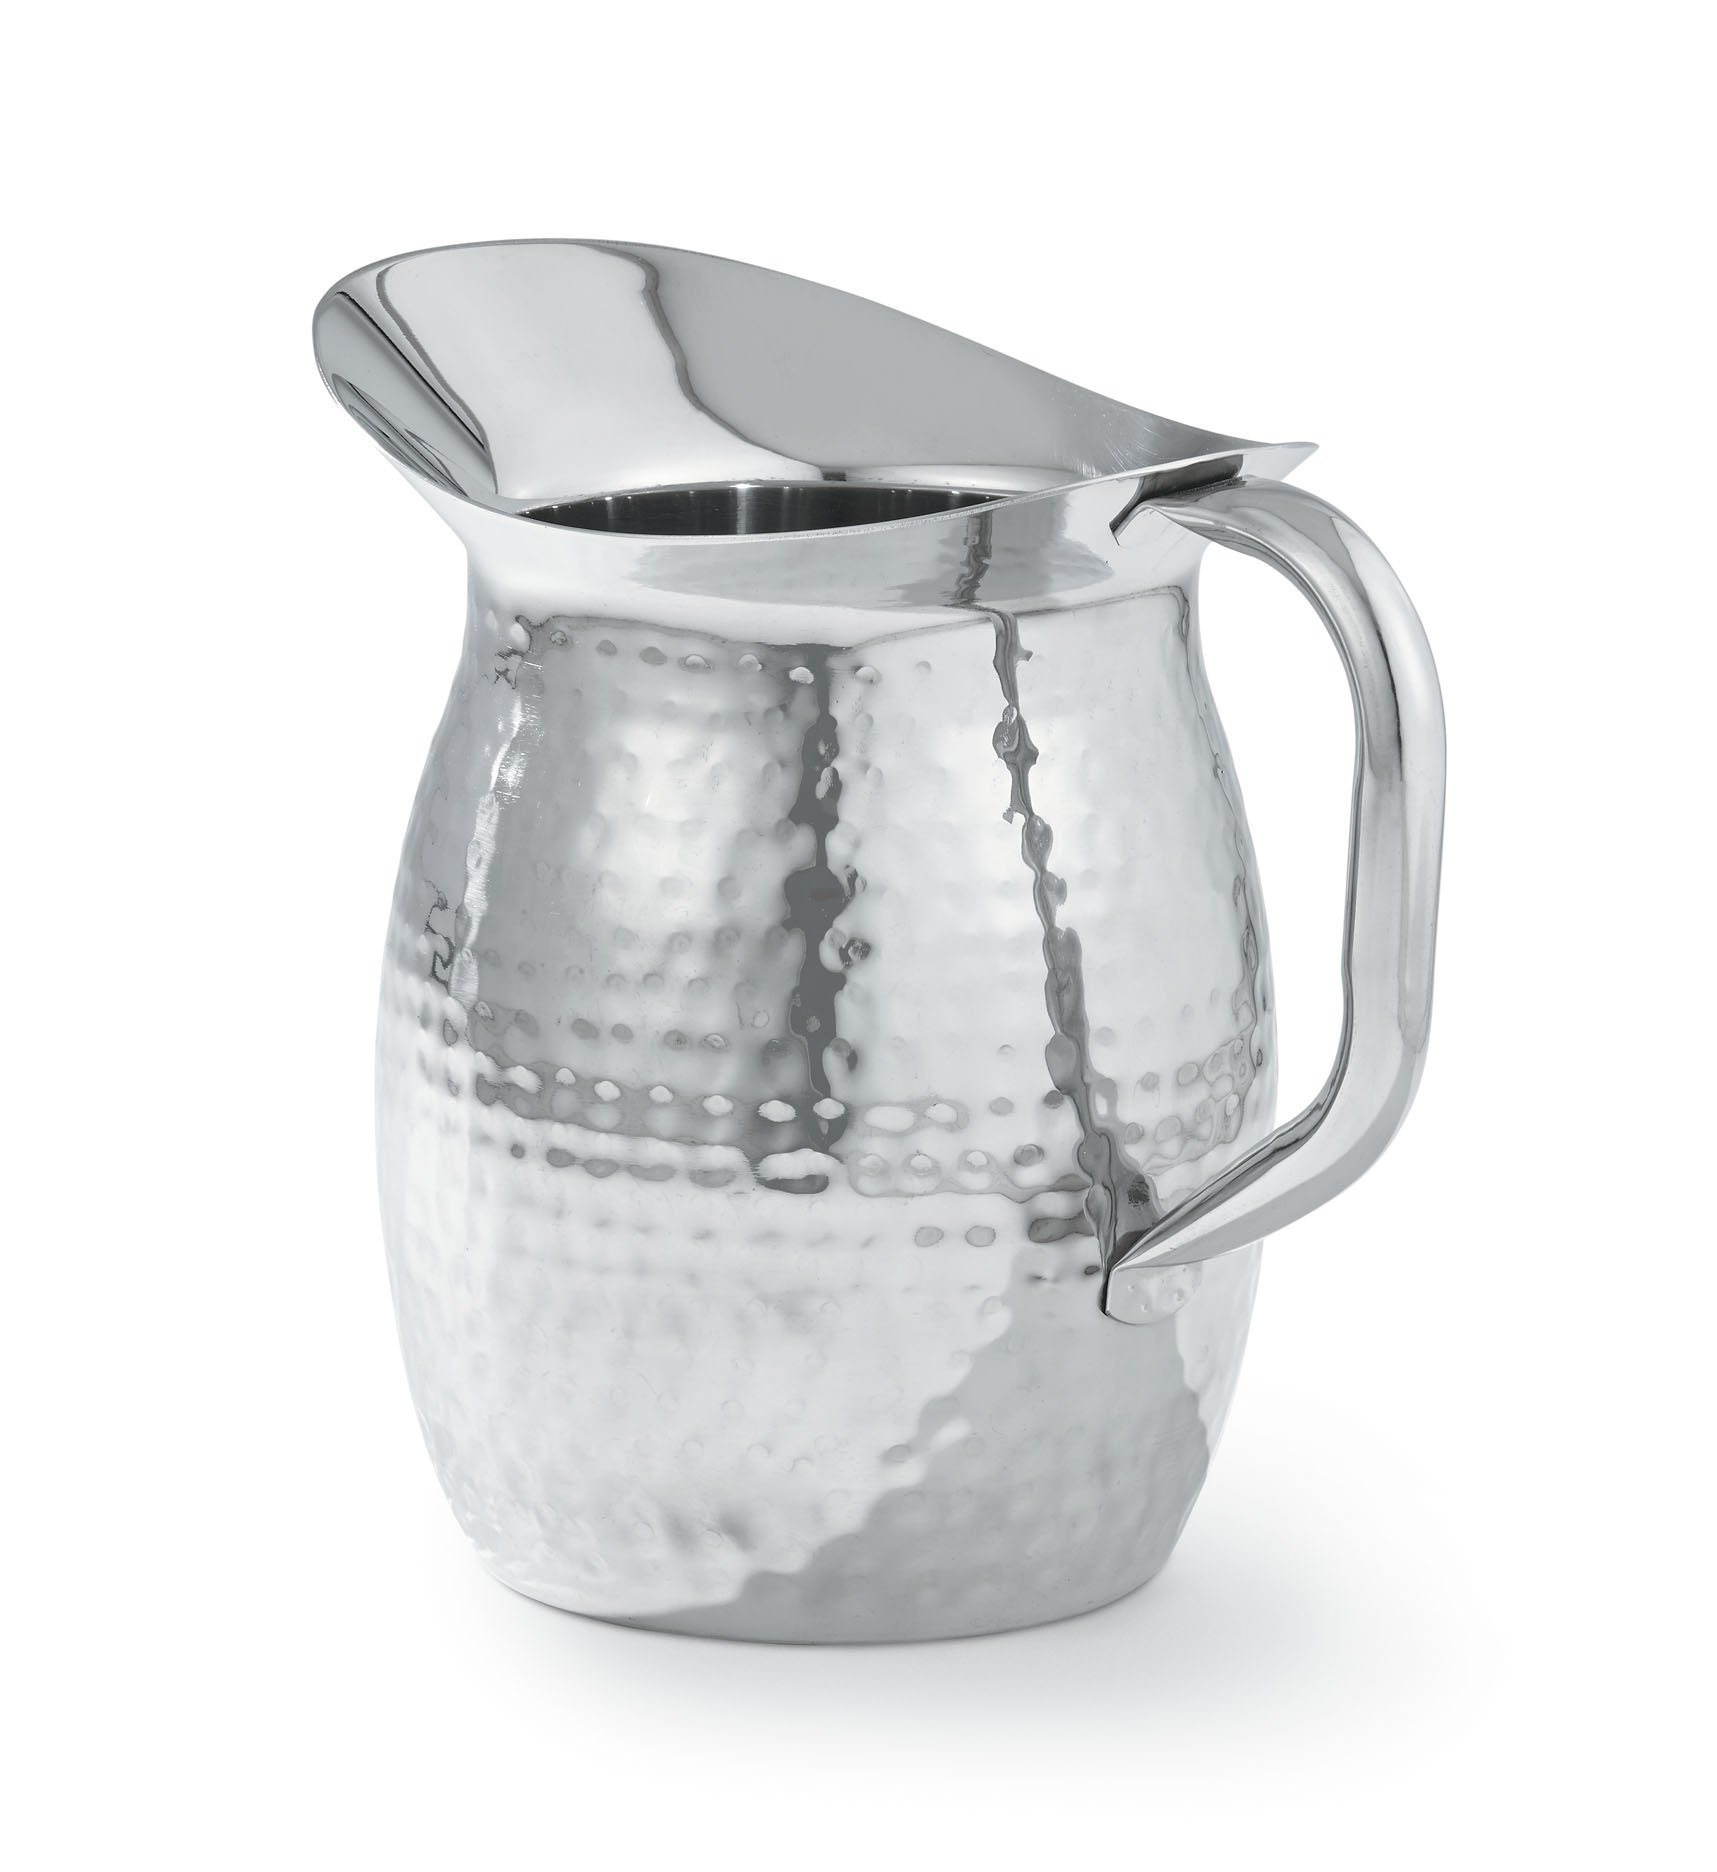 Artisan 2-Quart Double-Wall, Stainless Steel Insulated Serving Pitcher with Hammered Texture by Artisan (Image #1)